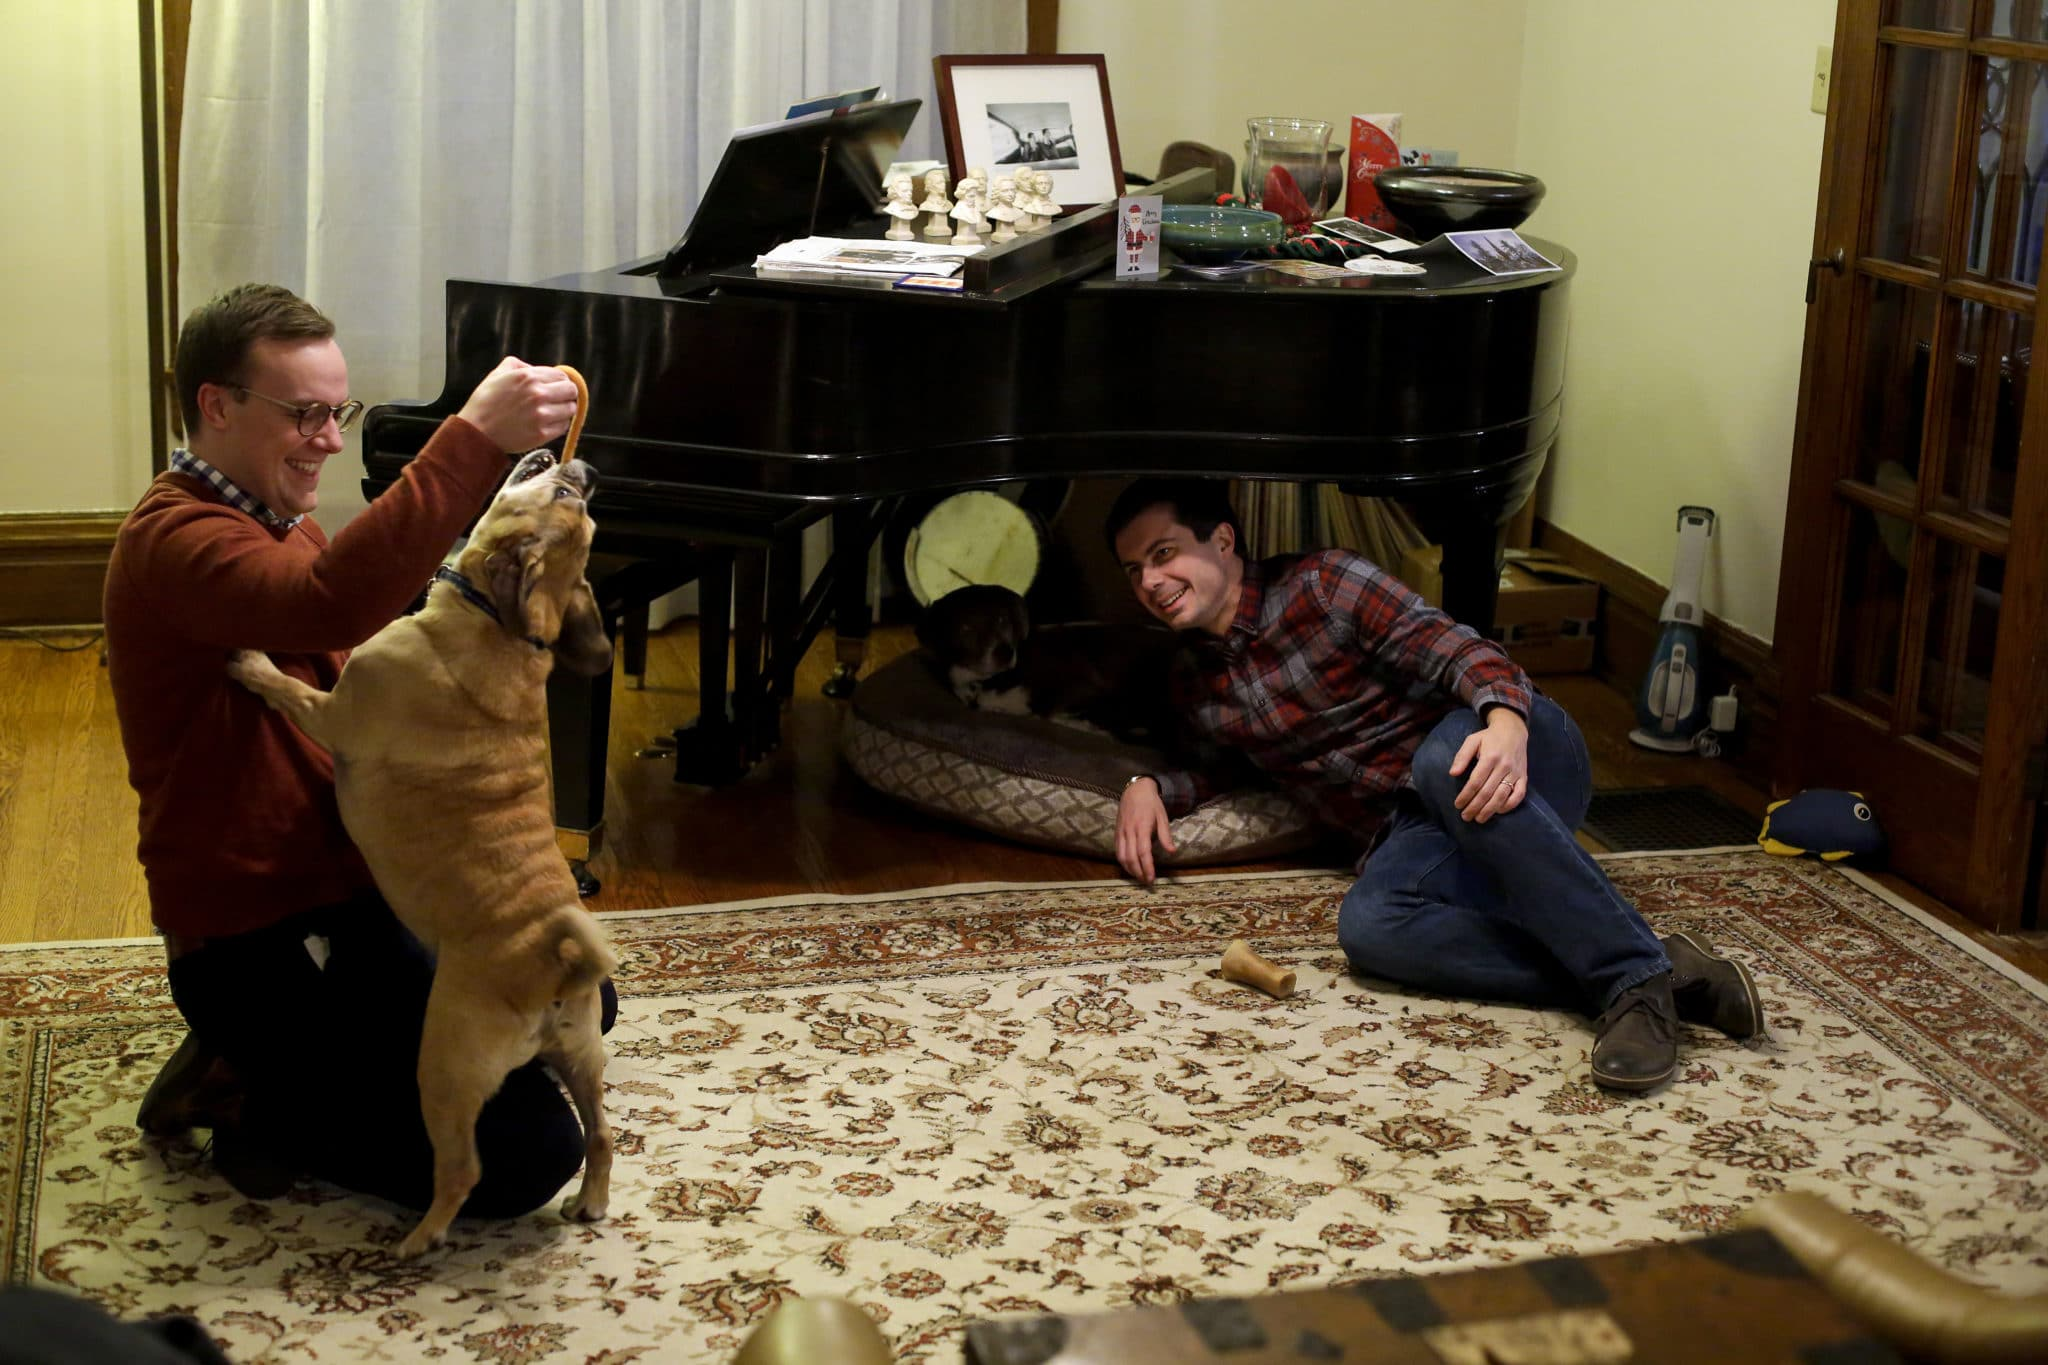 South Bend mayor Pete Buttigieg watches as his husband Chasten Glezman plays with their dog Buddy at their home on Tuesday